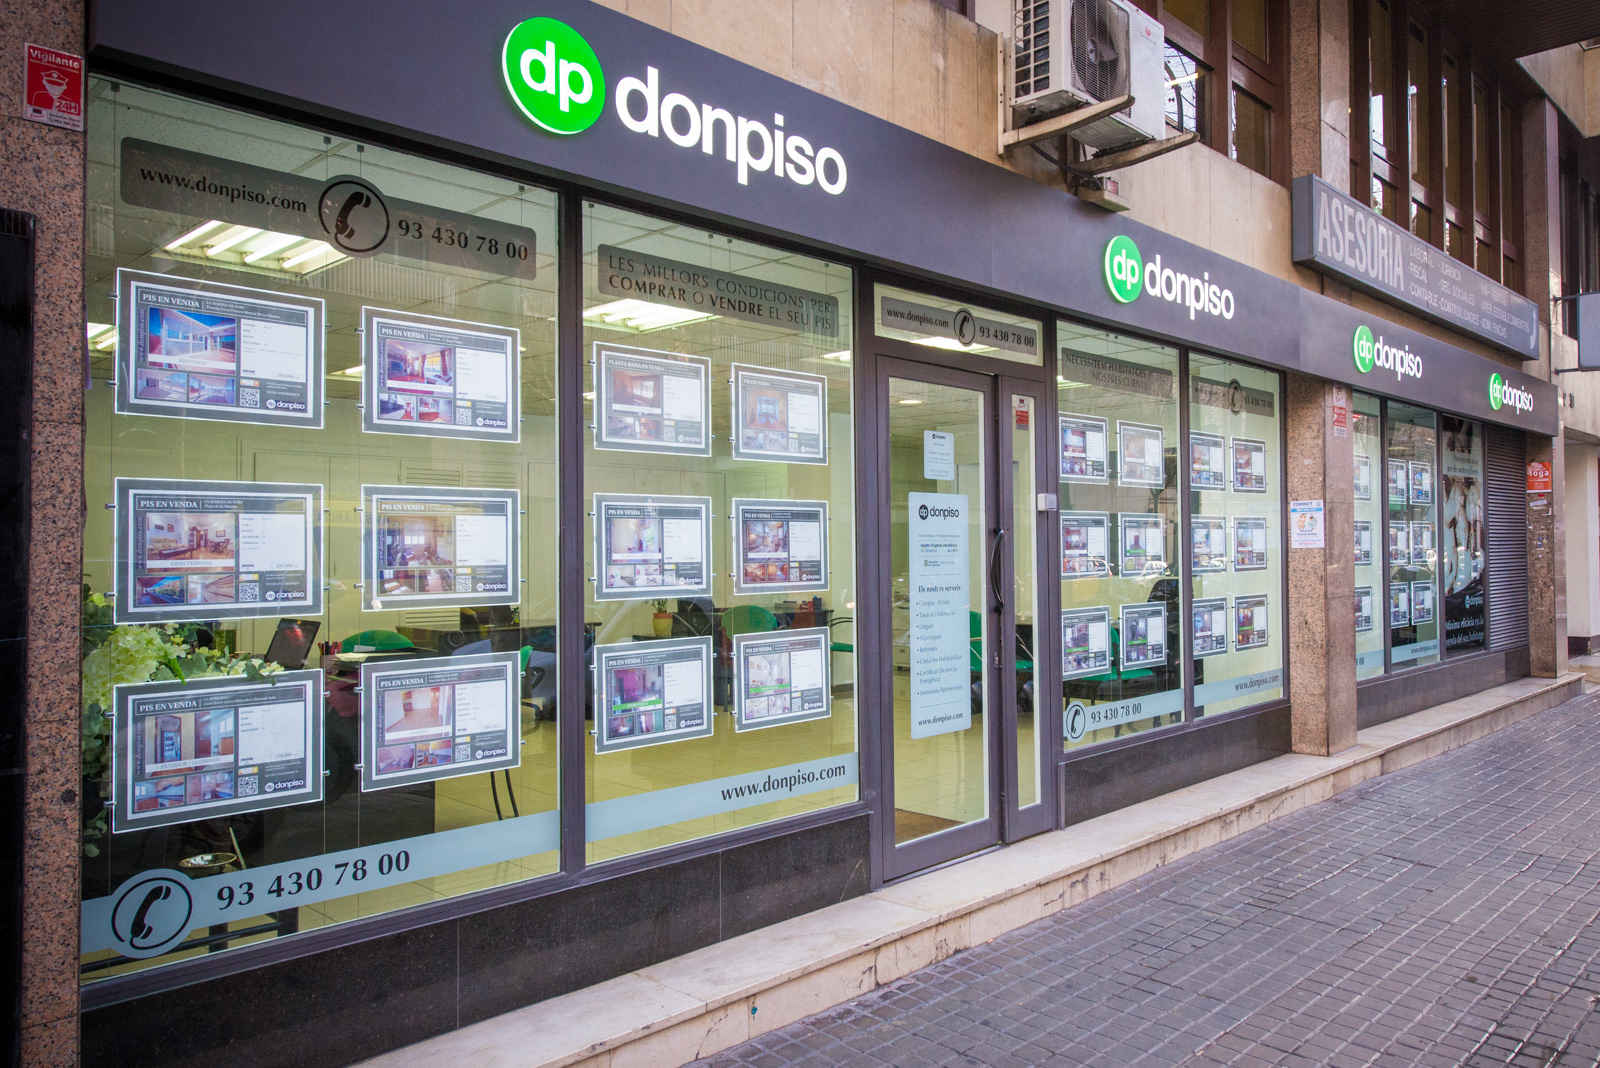 oficina donpiso Bcn Berl�n